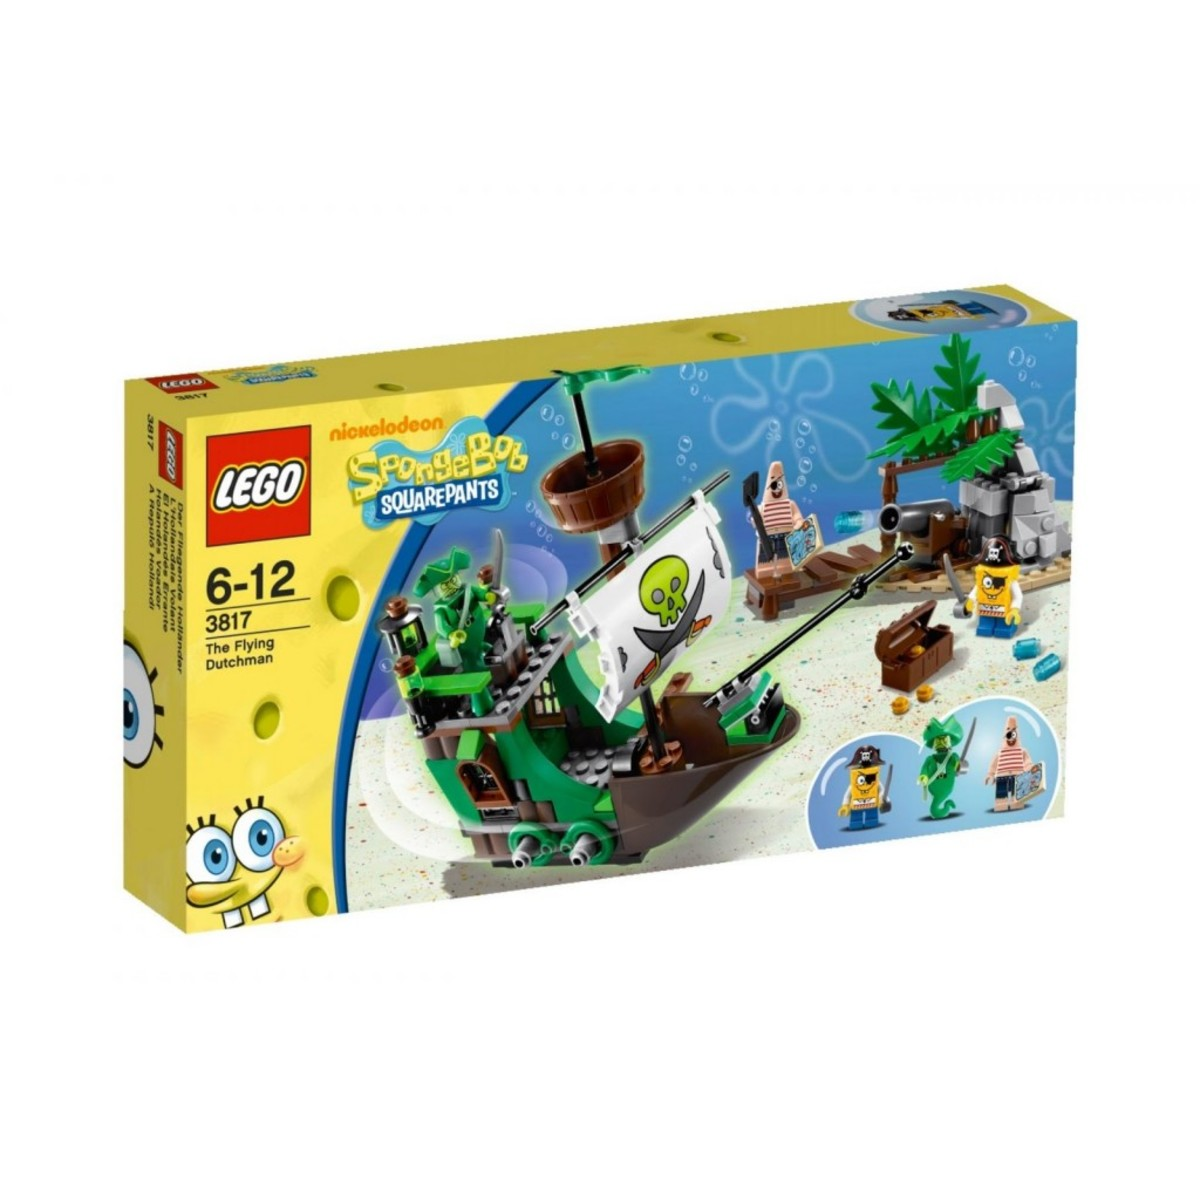 LEGO SpongeBob SquarePants The Flying Dutchman 3817 Box